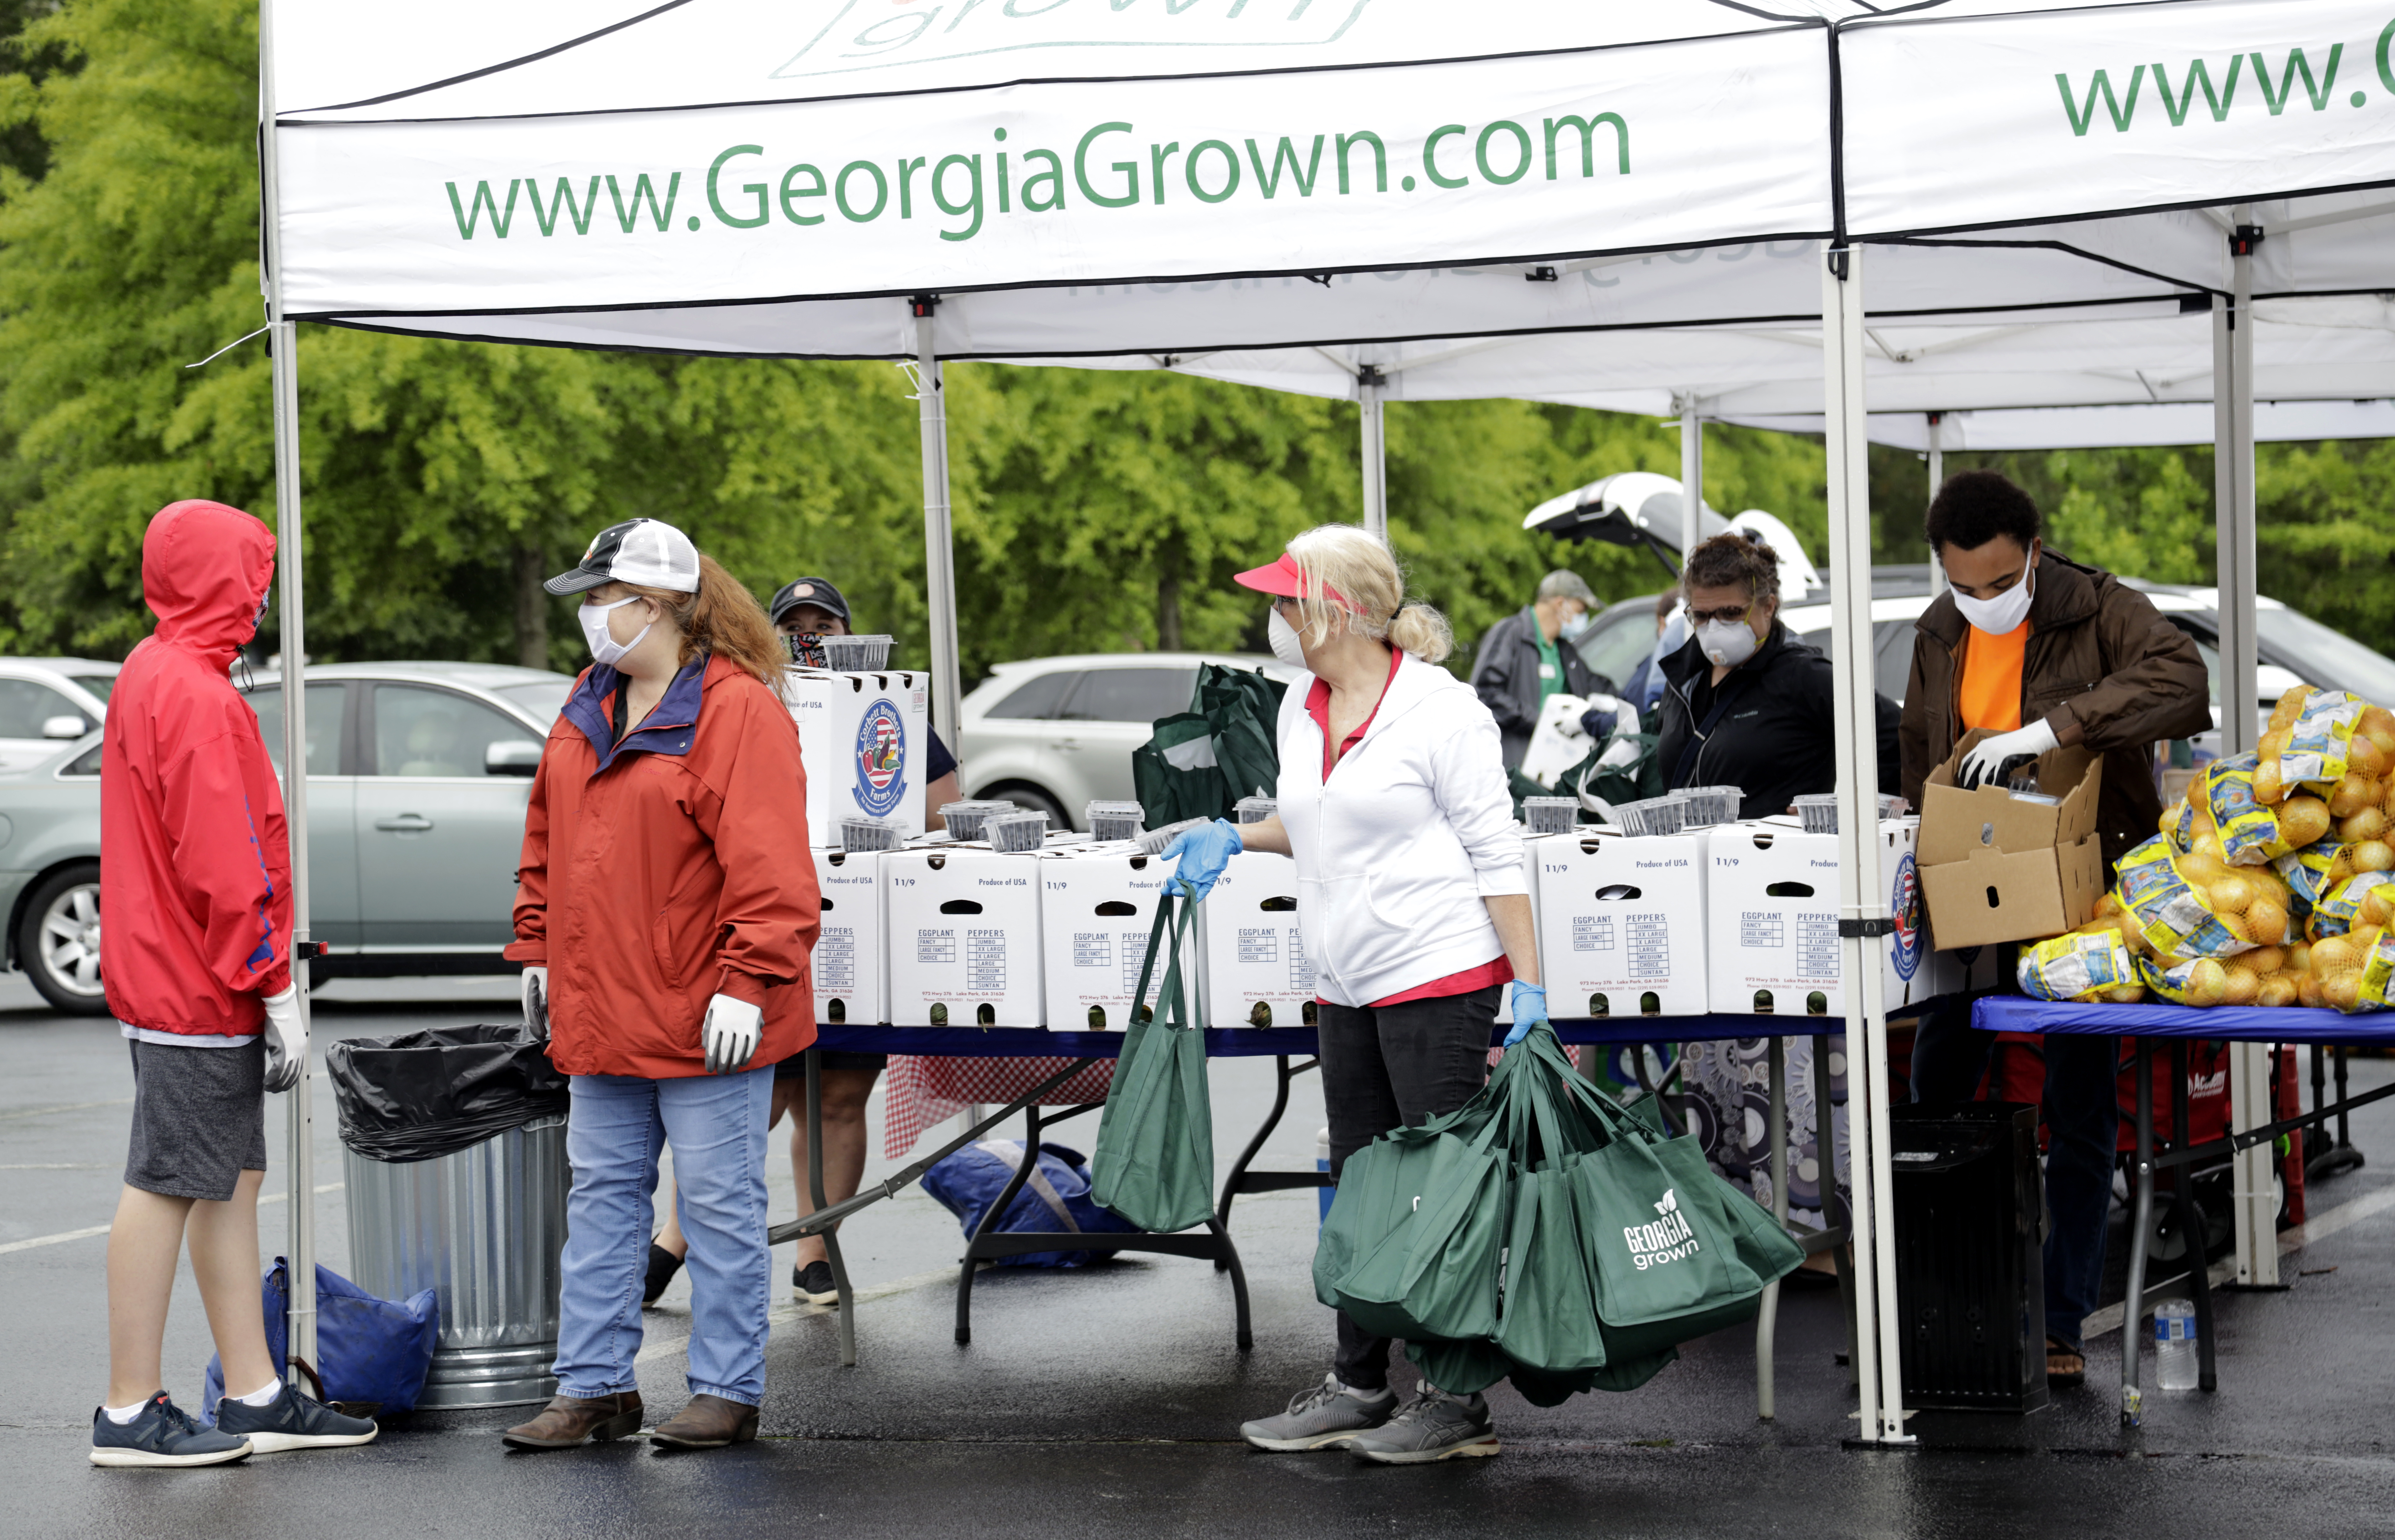 Georgia Grown, a resource of the Georgia Department of Agriculture that distributes fresh food, is pictured above distributing produce in Gwinnett County.